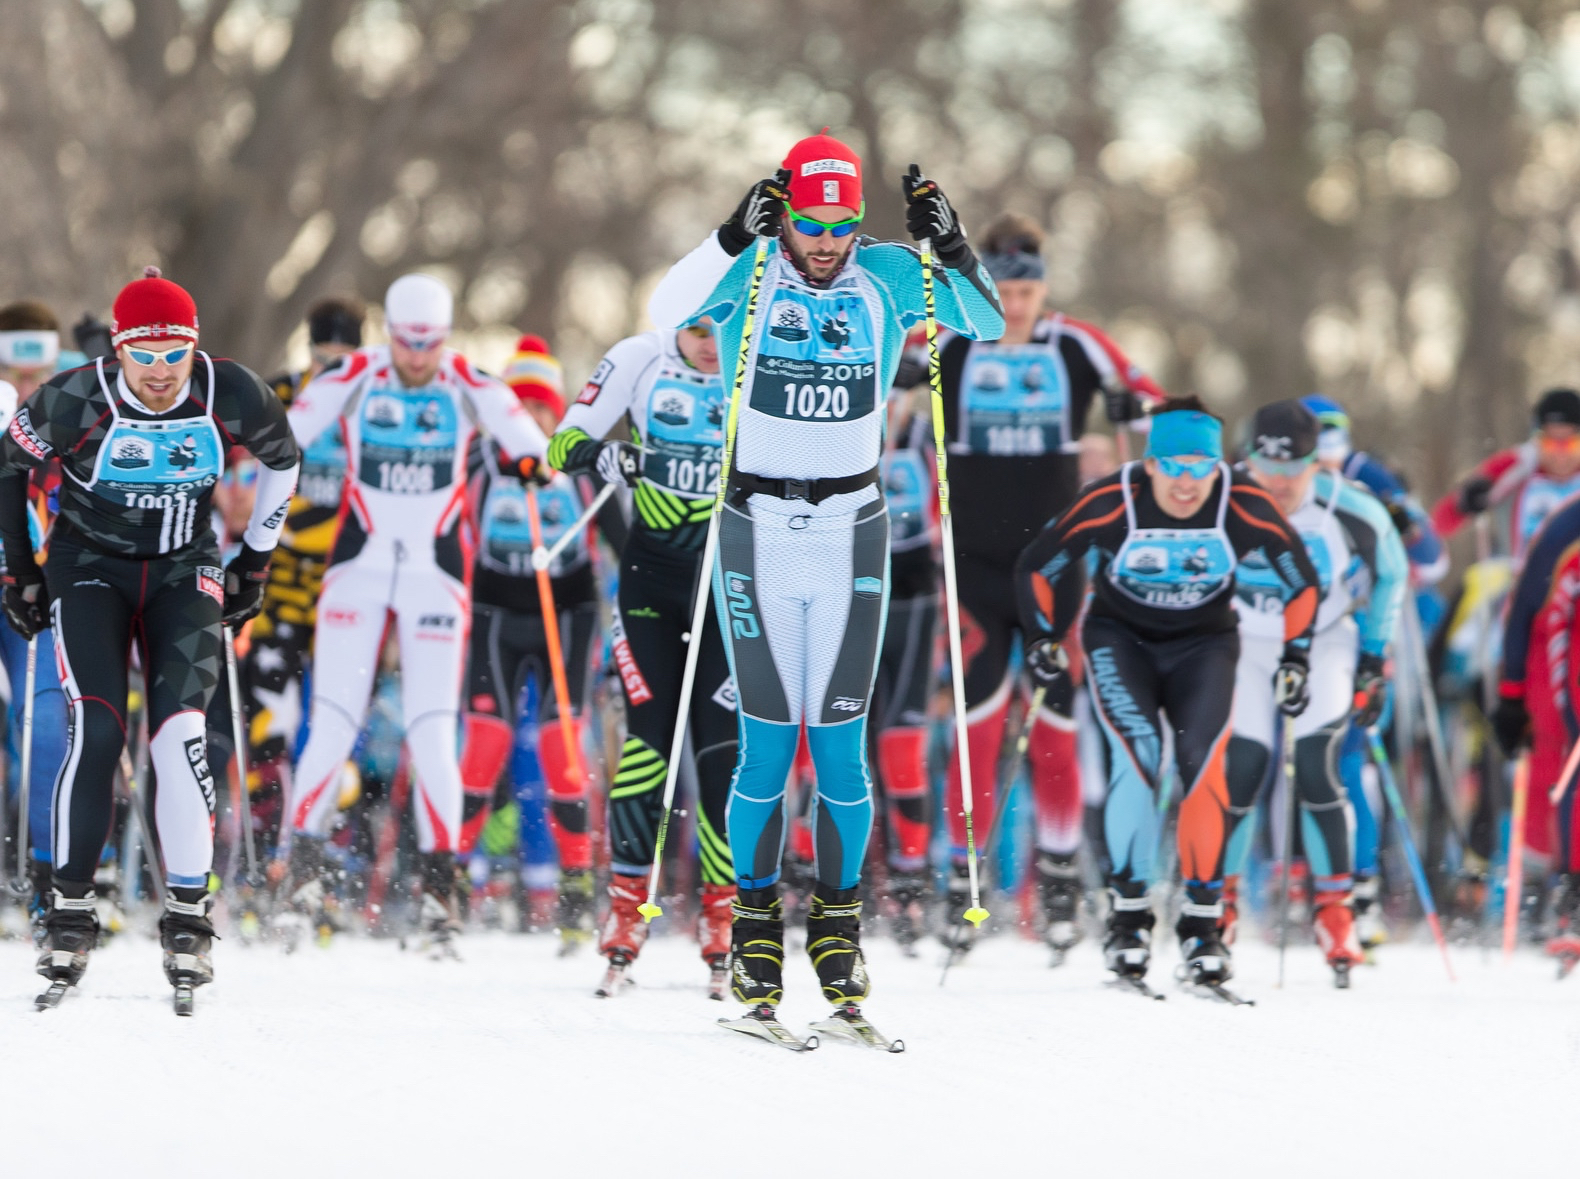 The Columbia Sportswear Skate Marathon has cross-country skiers of all ages racing between Theodore Wirth Park and Uptown's Loppet Village. Photo by Steve Kotvis